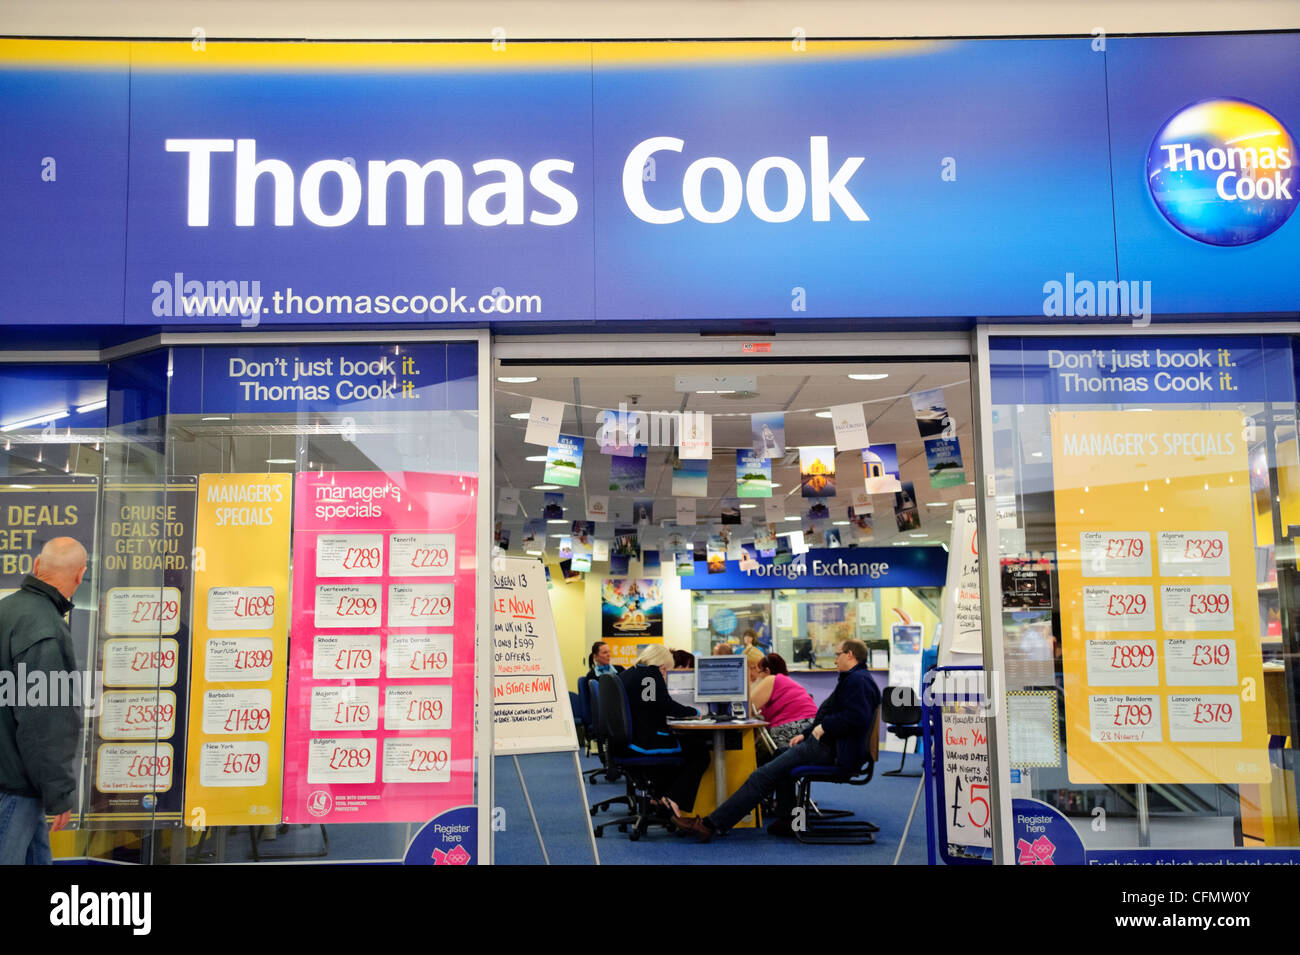 Thomas Cook Reisebüros bei Merry Hill Shopping Center, West Midlands, UK. Stockbild